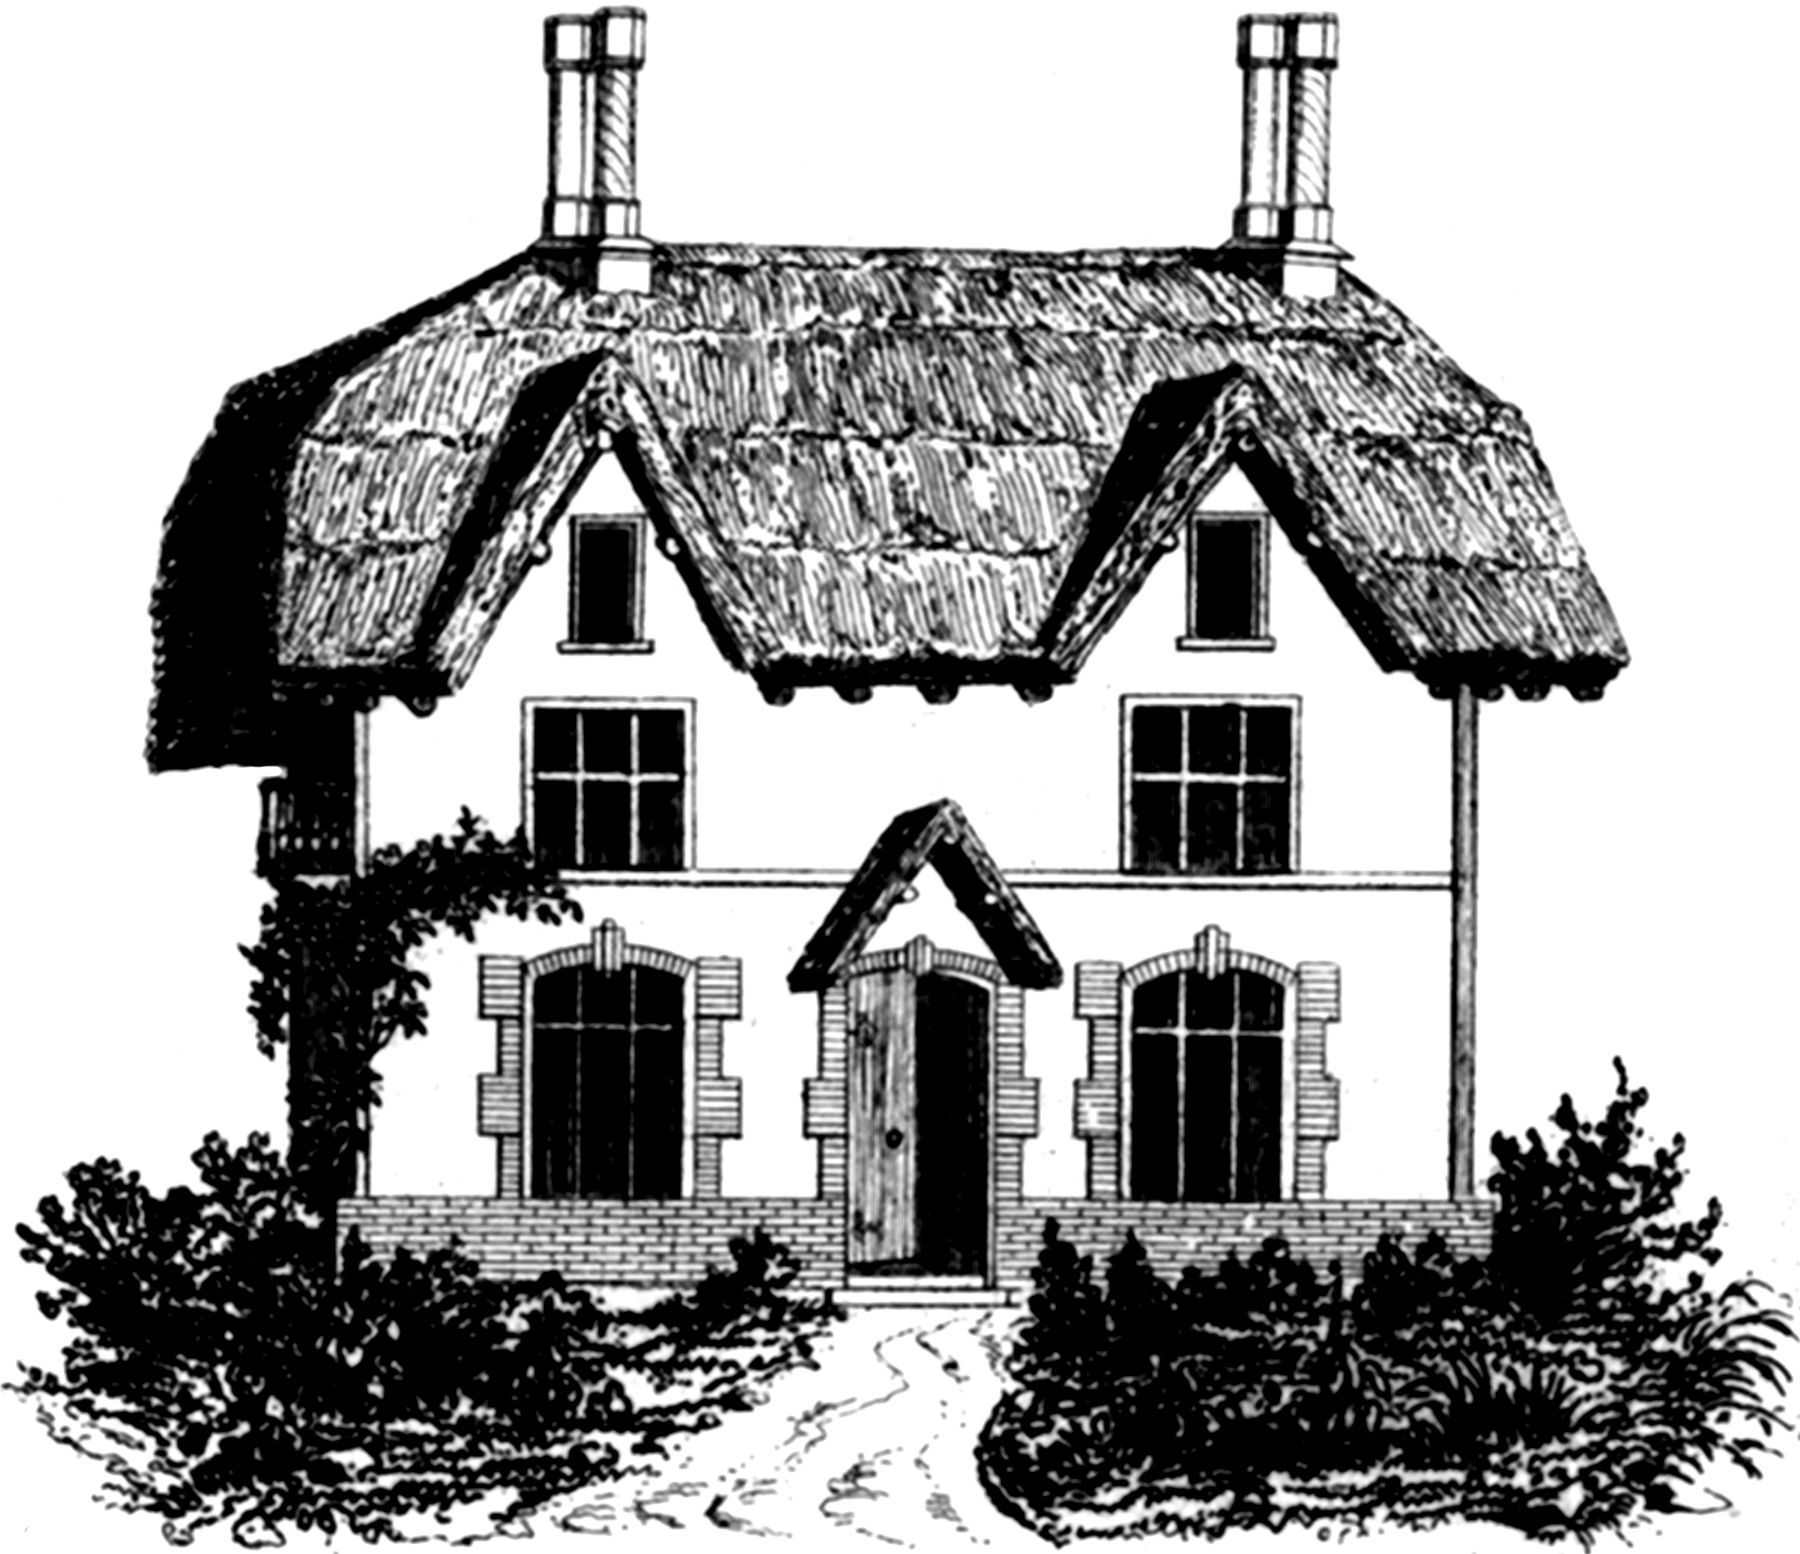 Cottage clipart thatched roof. House image houses and